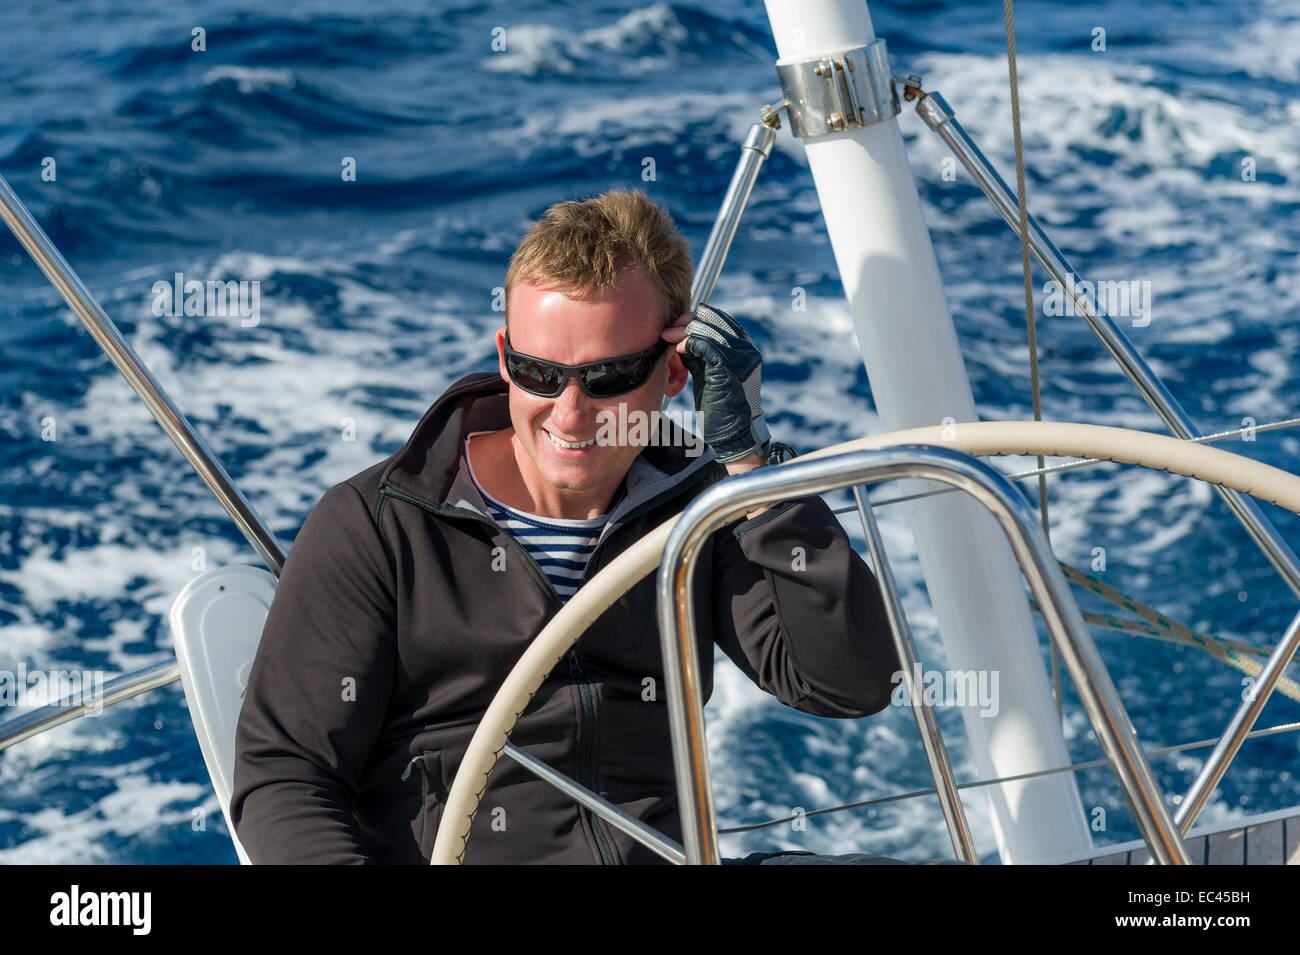 Cheerful skipper on the helm of sailing boat - Stock Image